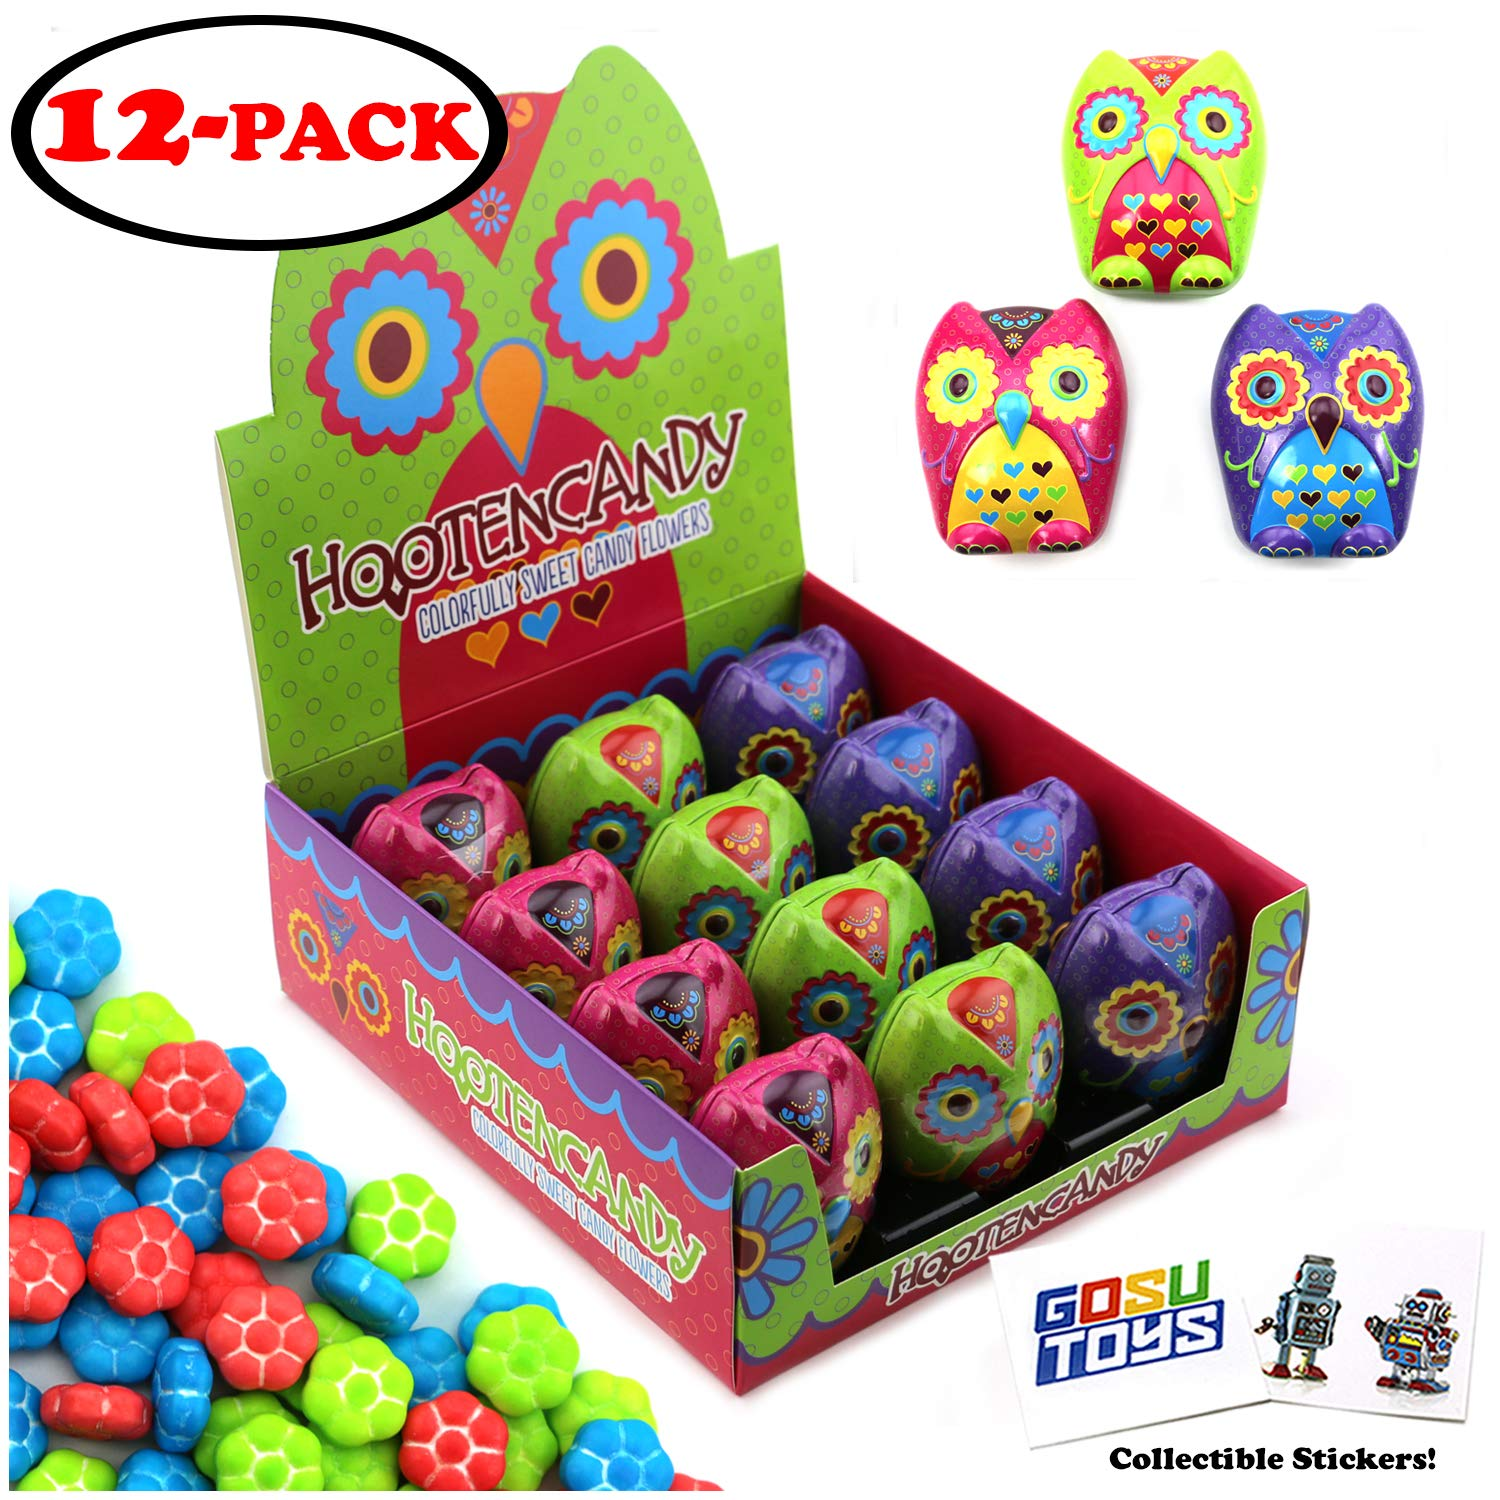 Hooten Owl Tin Candy (12 Pack Case) Colorful Design Sweet Flavor Berry Shape Festive Gift Stuffer with 2 GosuToys Stickers